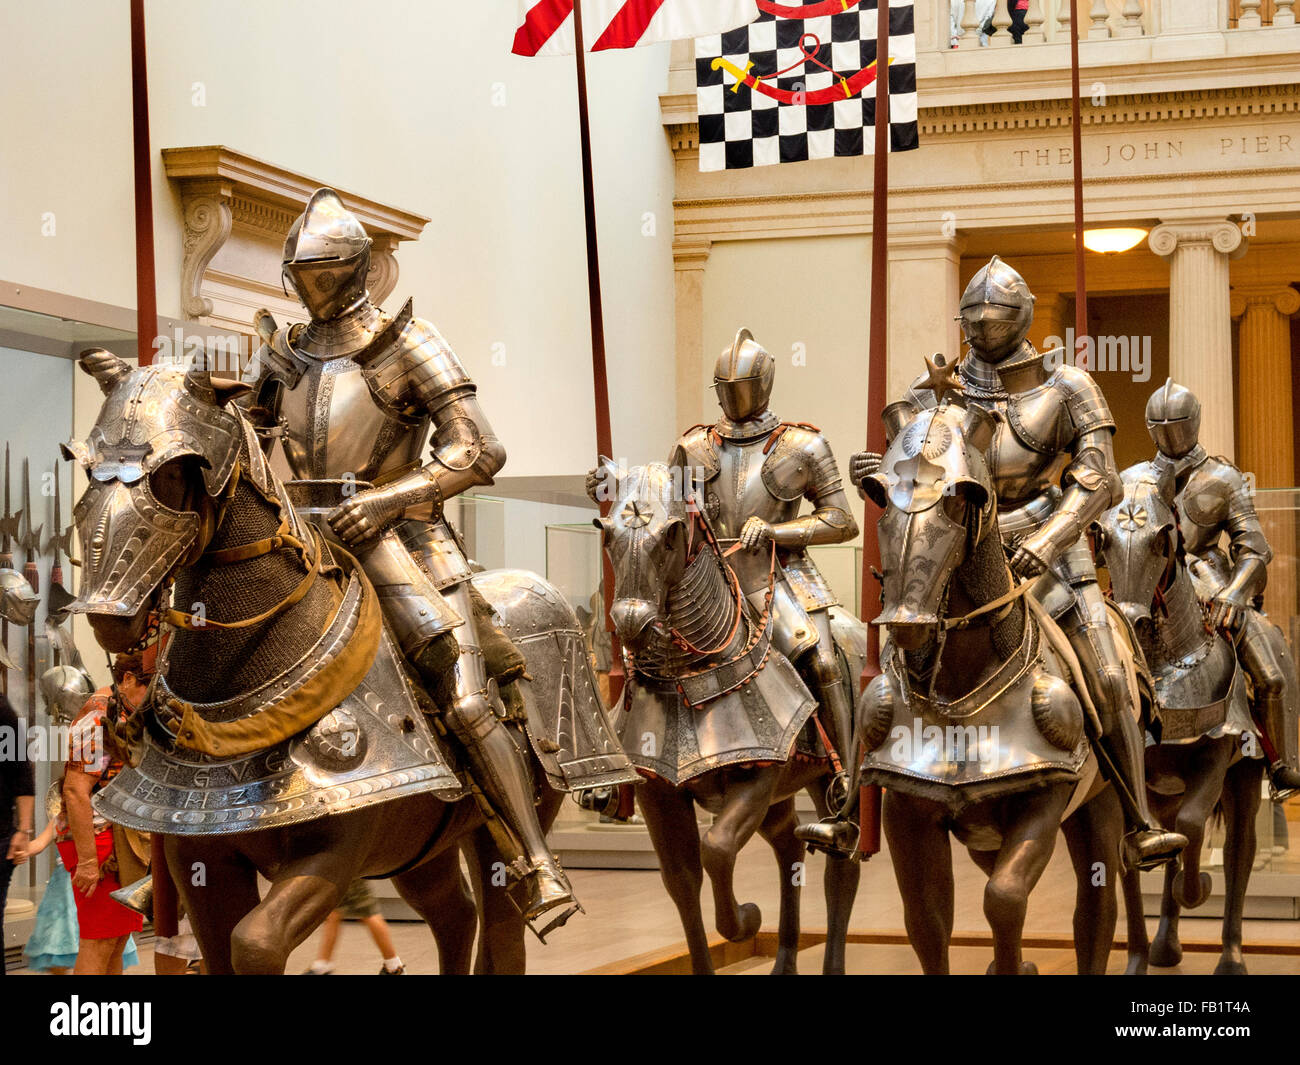 16th century medieval German full plate armor for man and horse at the Metropolitan Museum of Art, New York City. - Stock Image